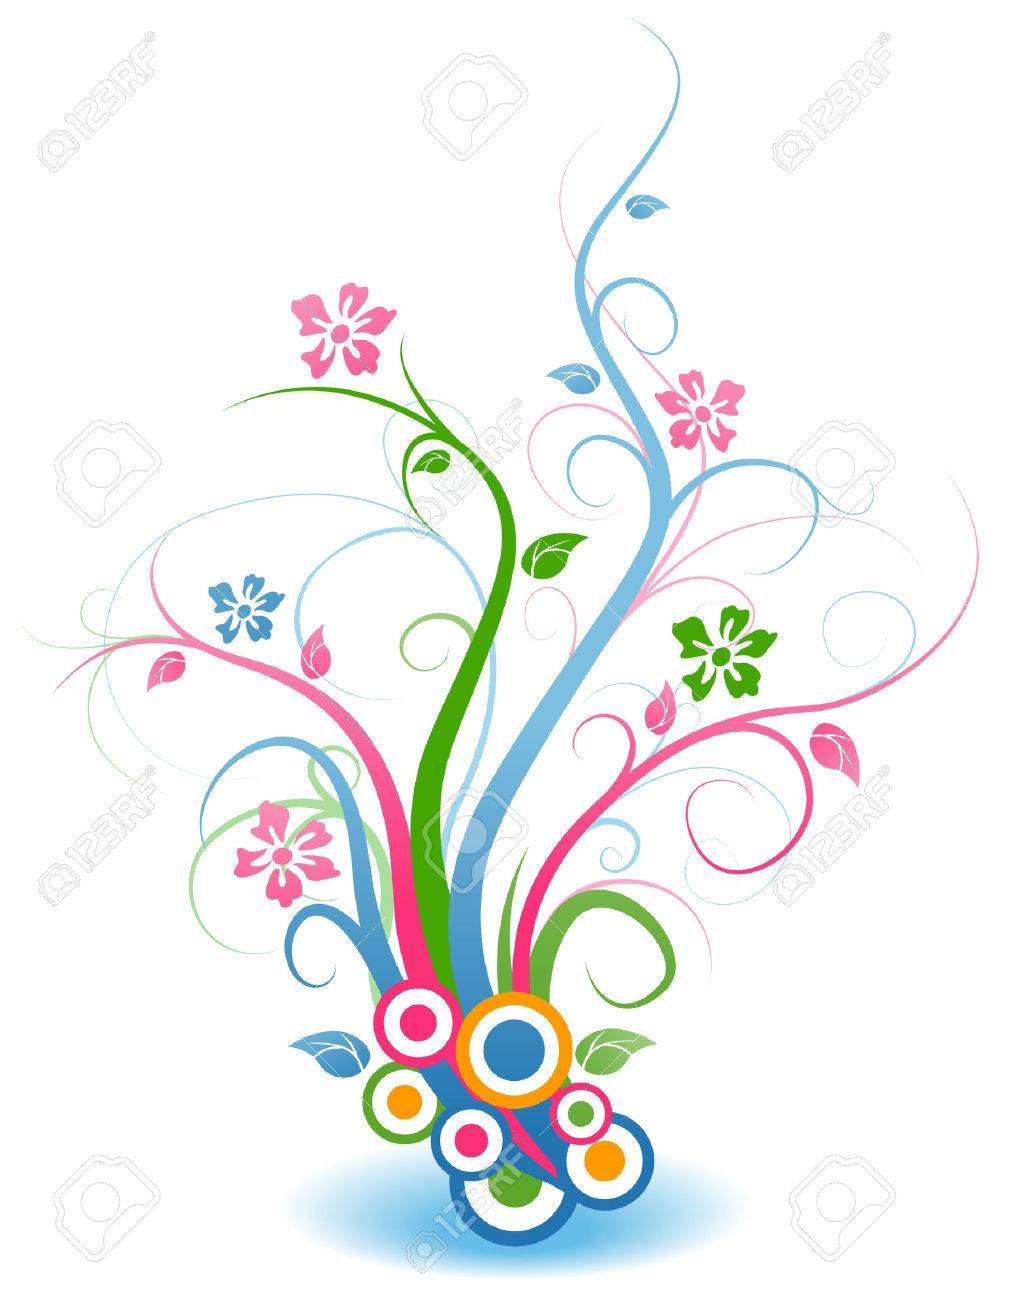 Floral Vines Stock Vector - 3547492